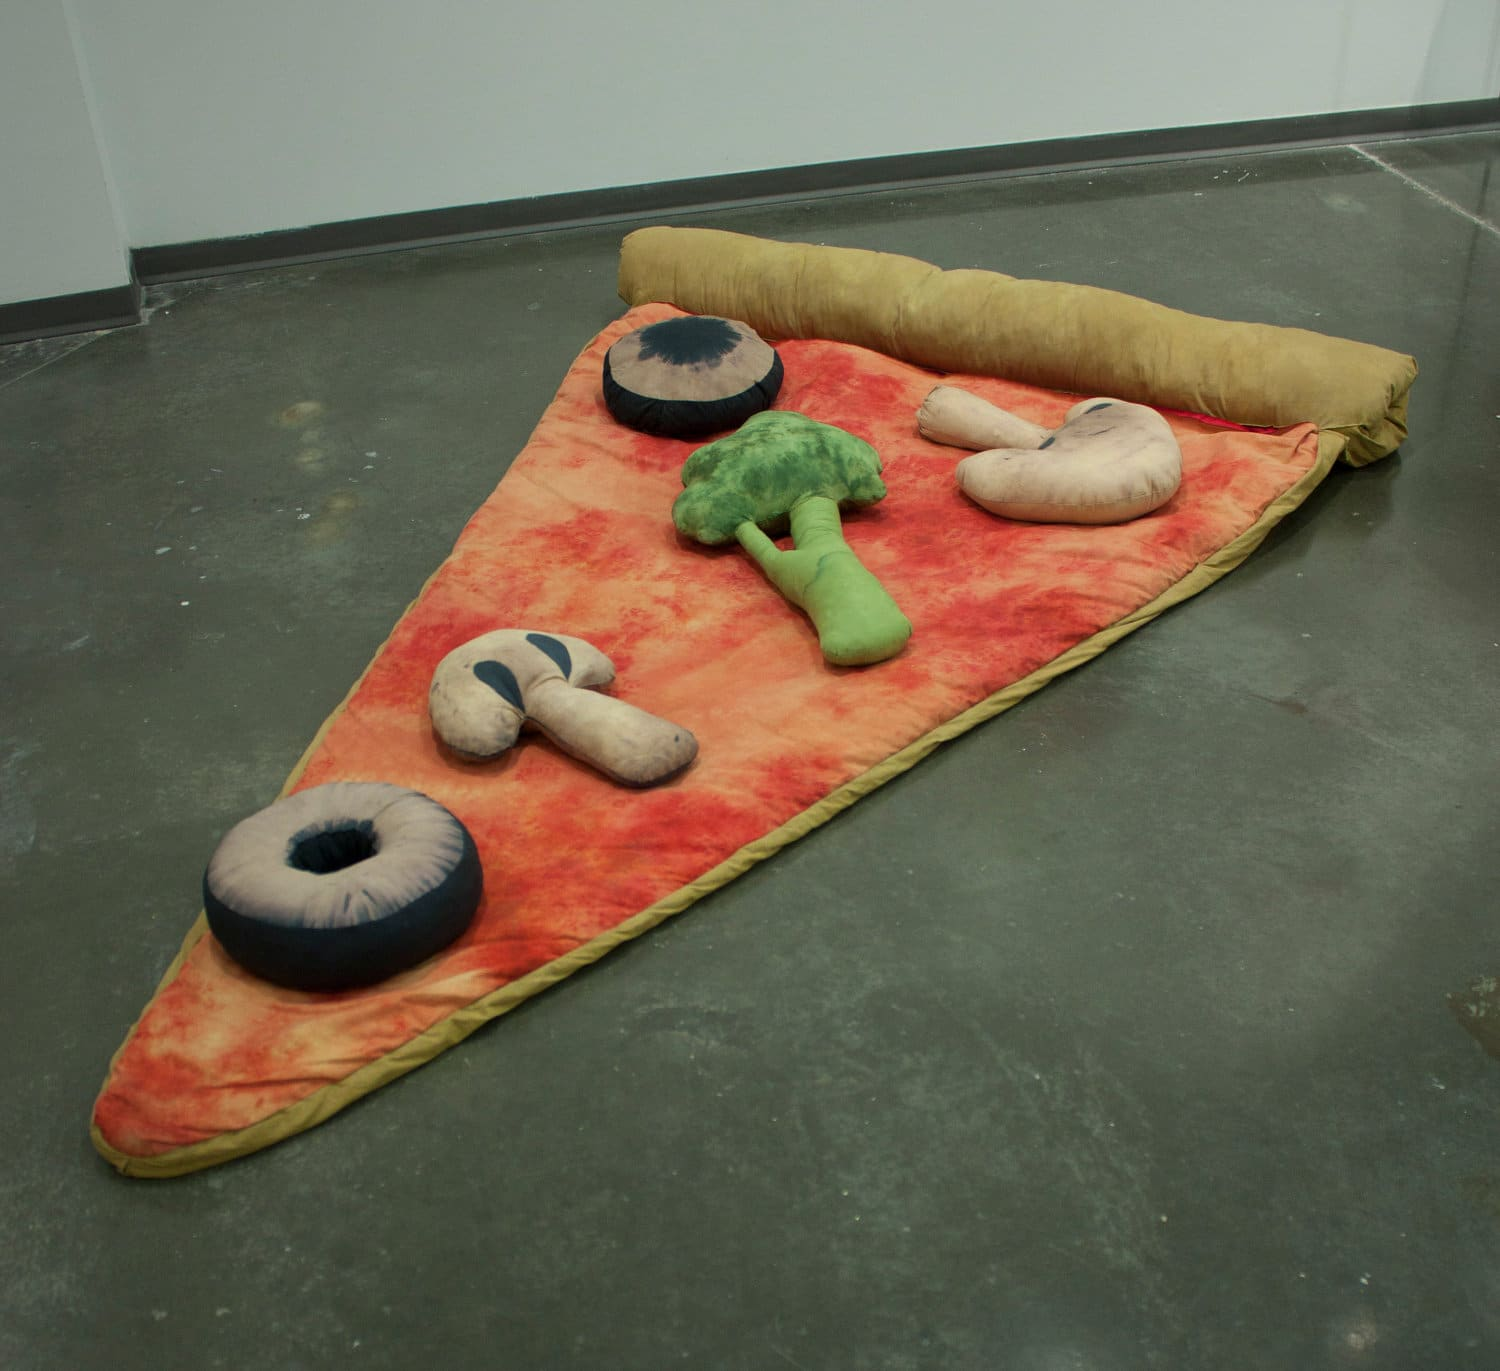 The Pizza Slice Sleeping Bag: Better Than A Nightly Snack